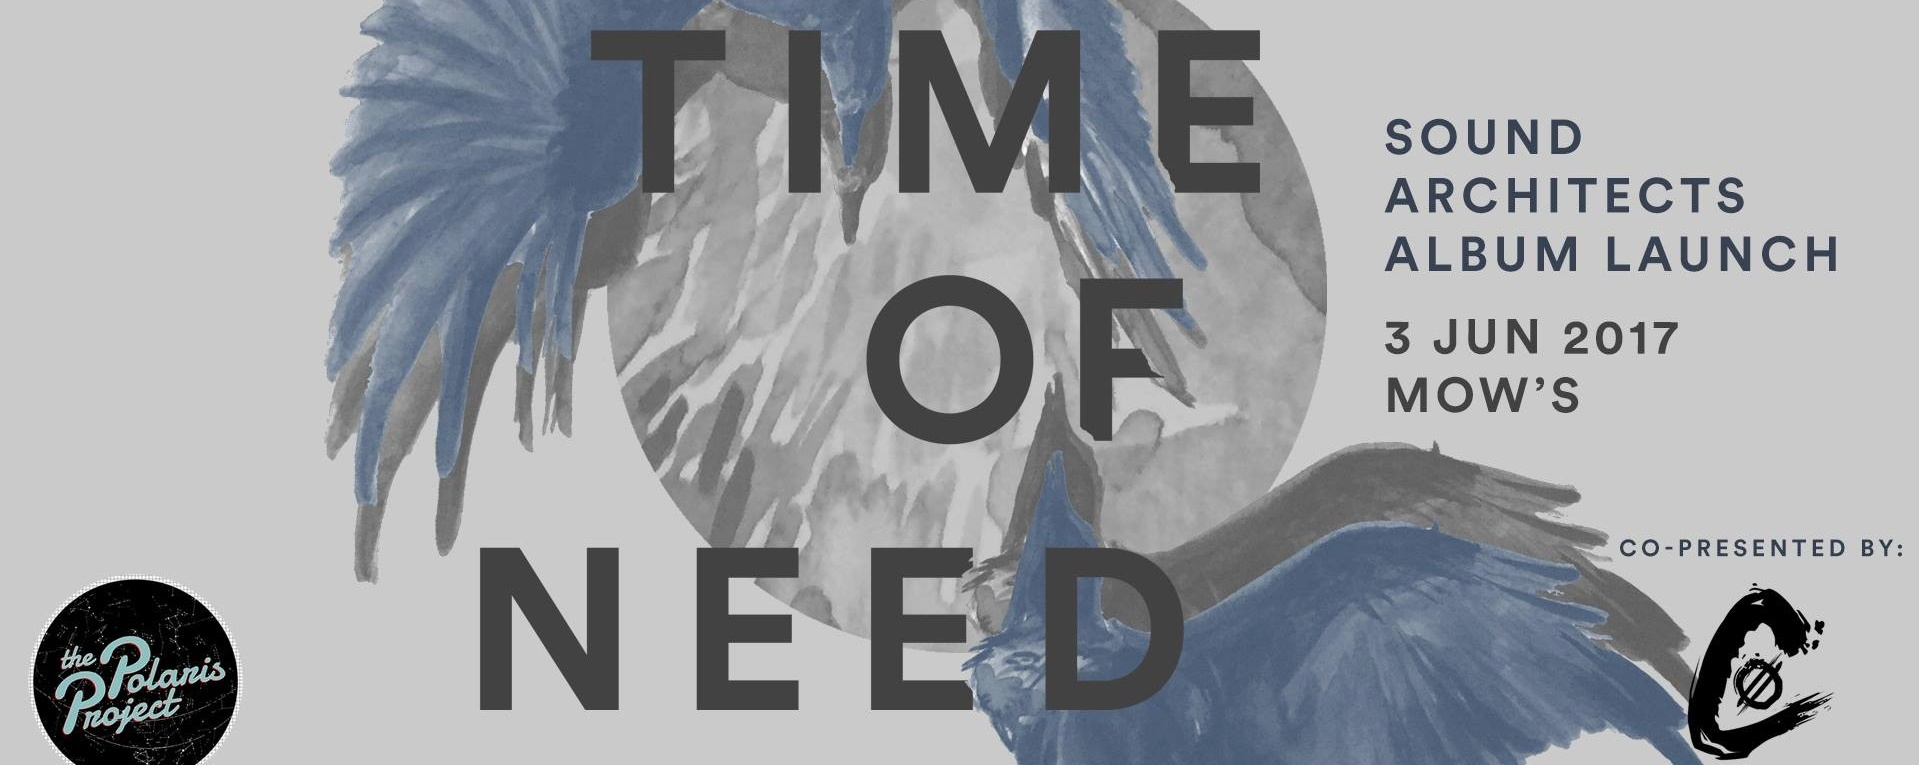 In Time Of Need: Sound Architects Album Launch